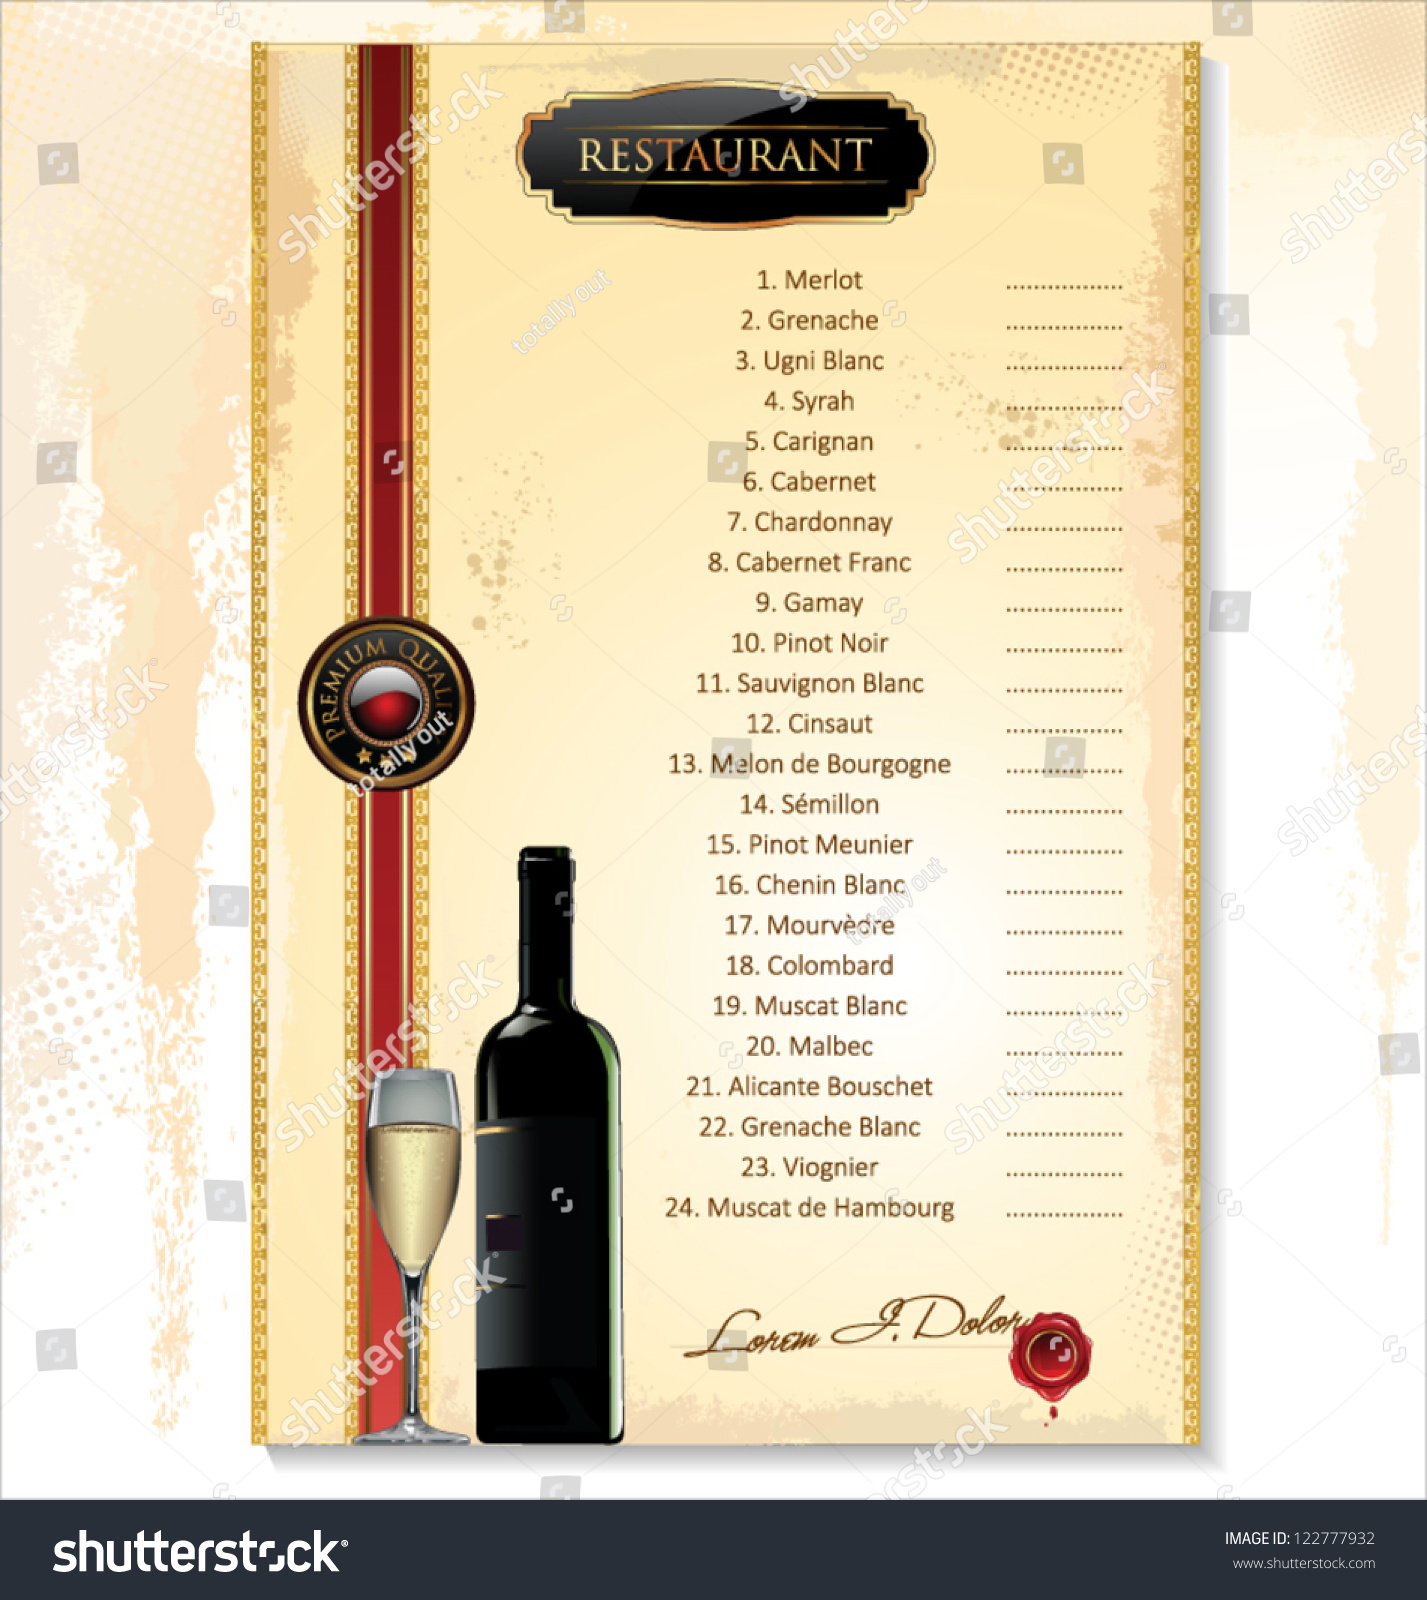 Wine Menu Template Price List Stock Vector 122777932 - Shutterstock